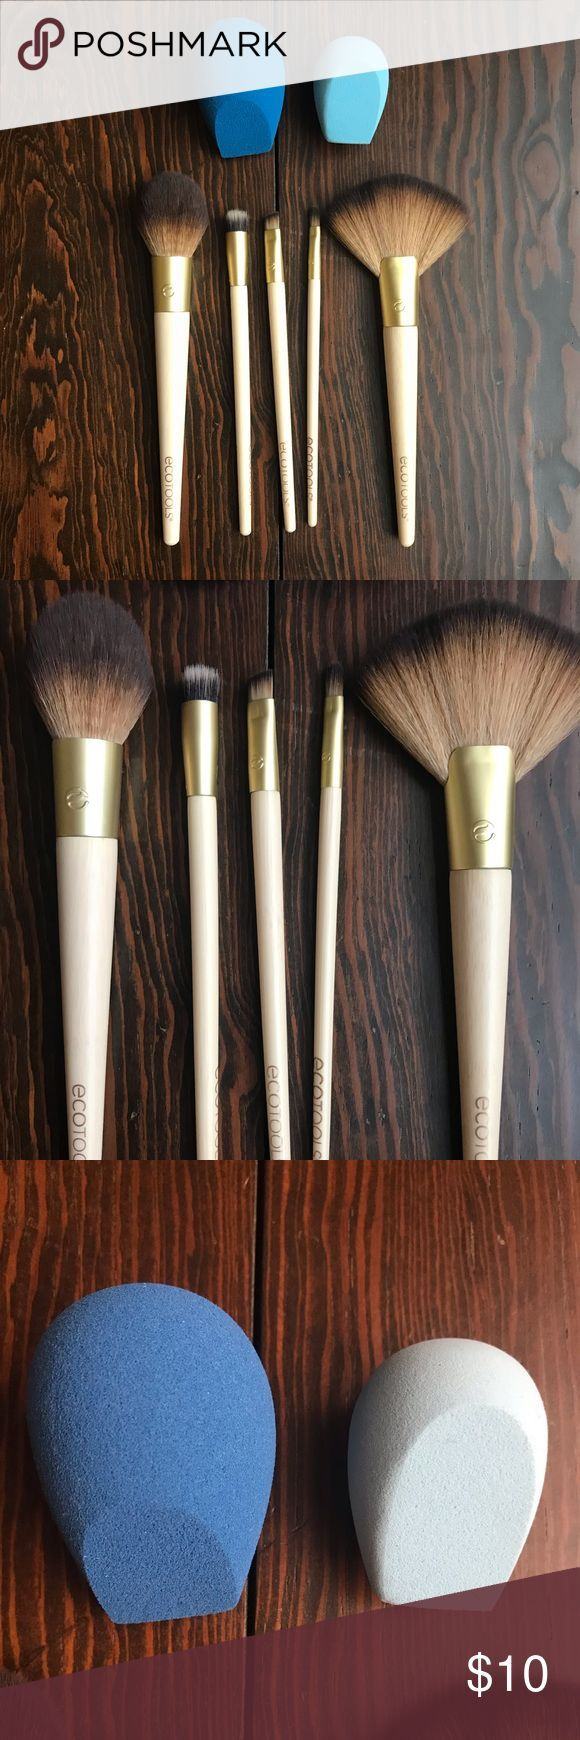 Lot of EcoTools Brushes and Sponges Two sponges and Five